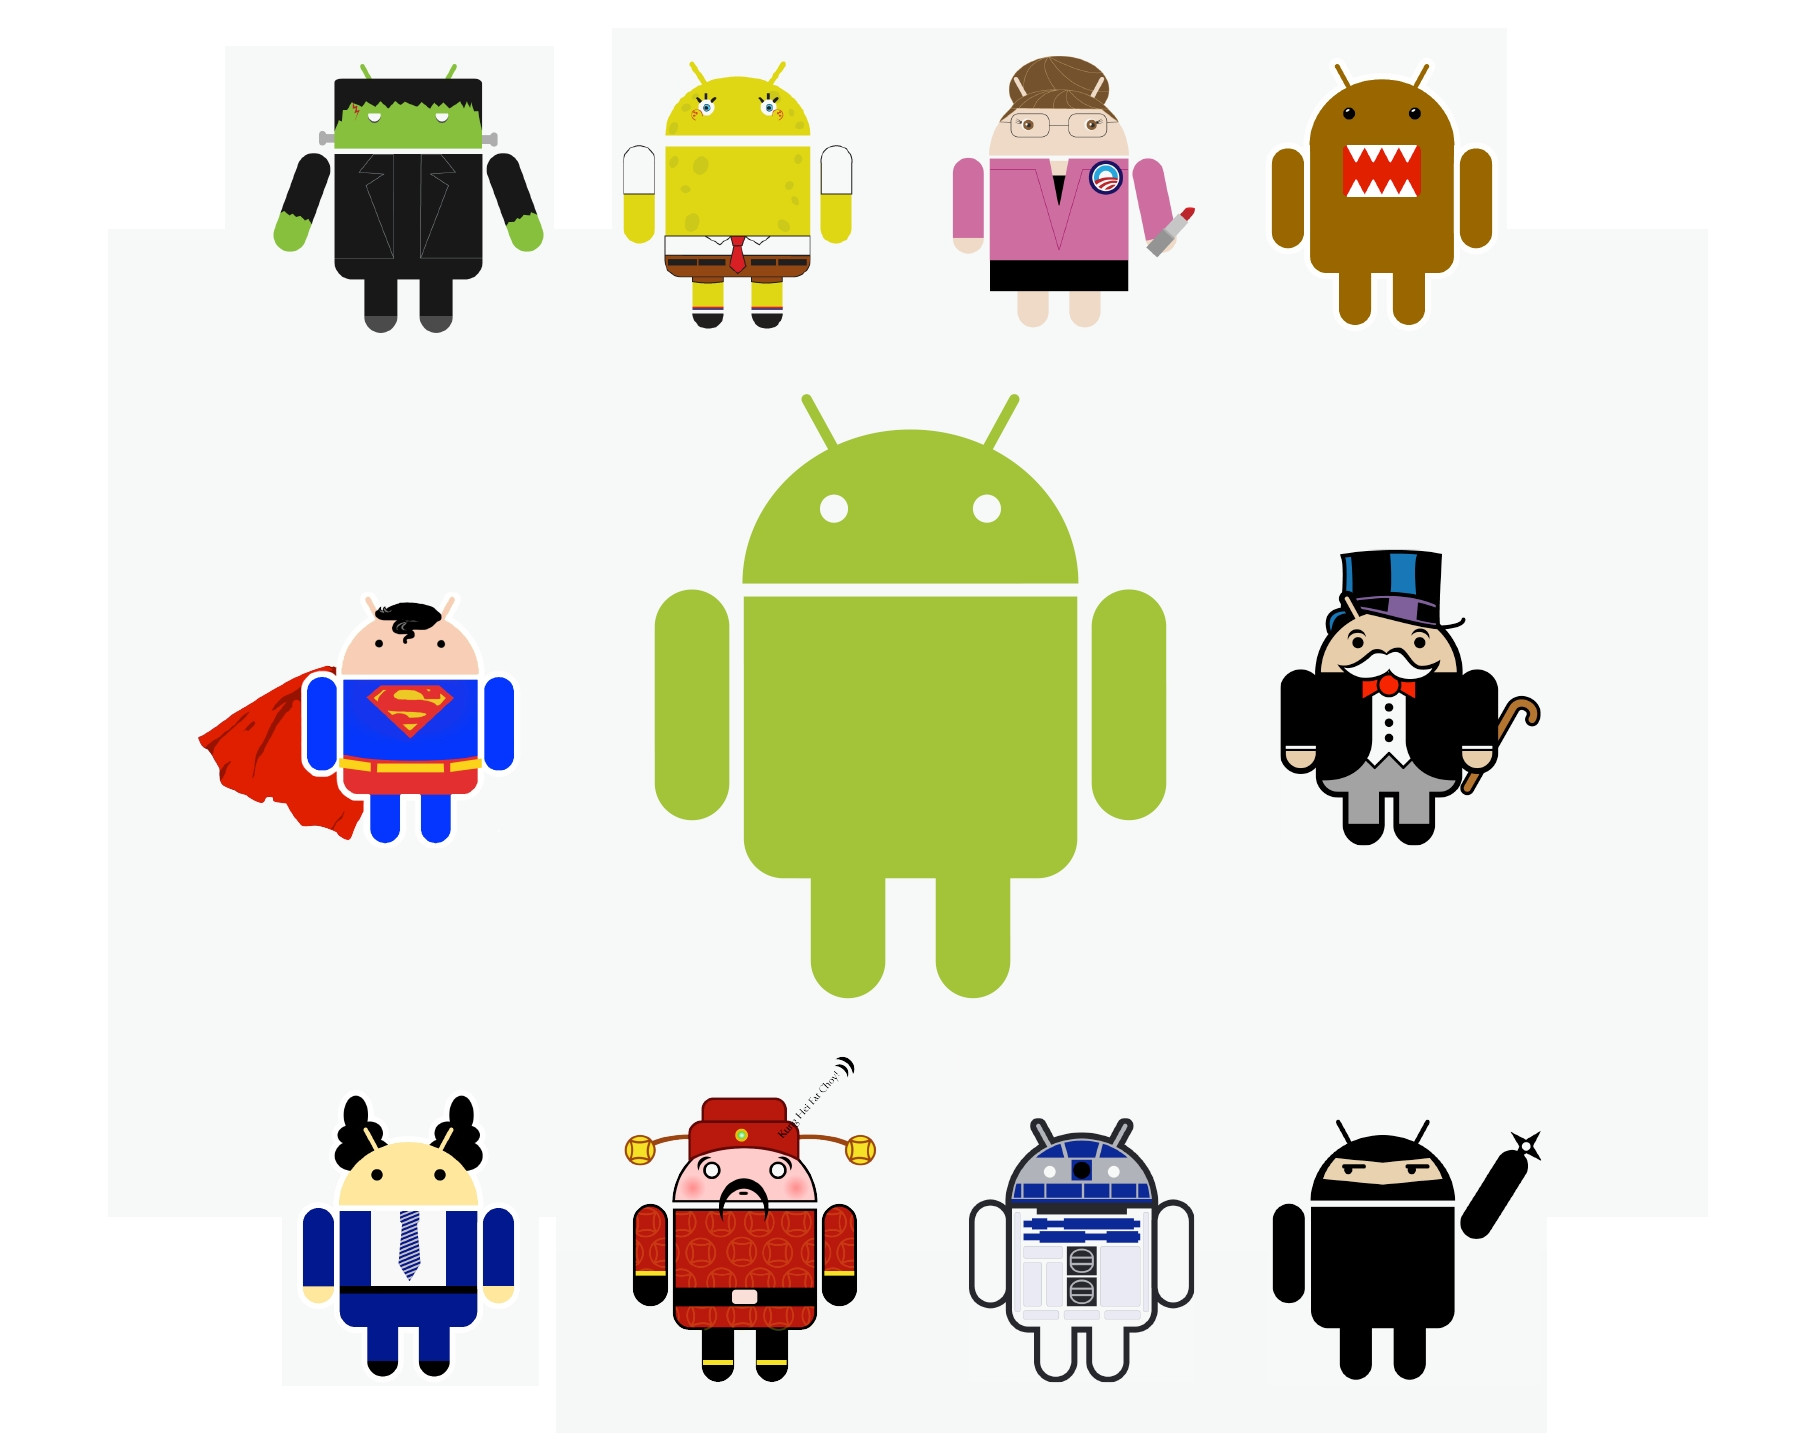 1414400407_the-story-of-the-android-robot-logo.jpg